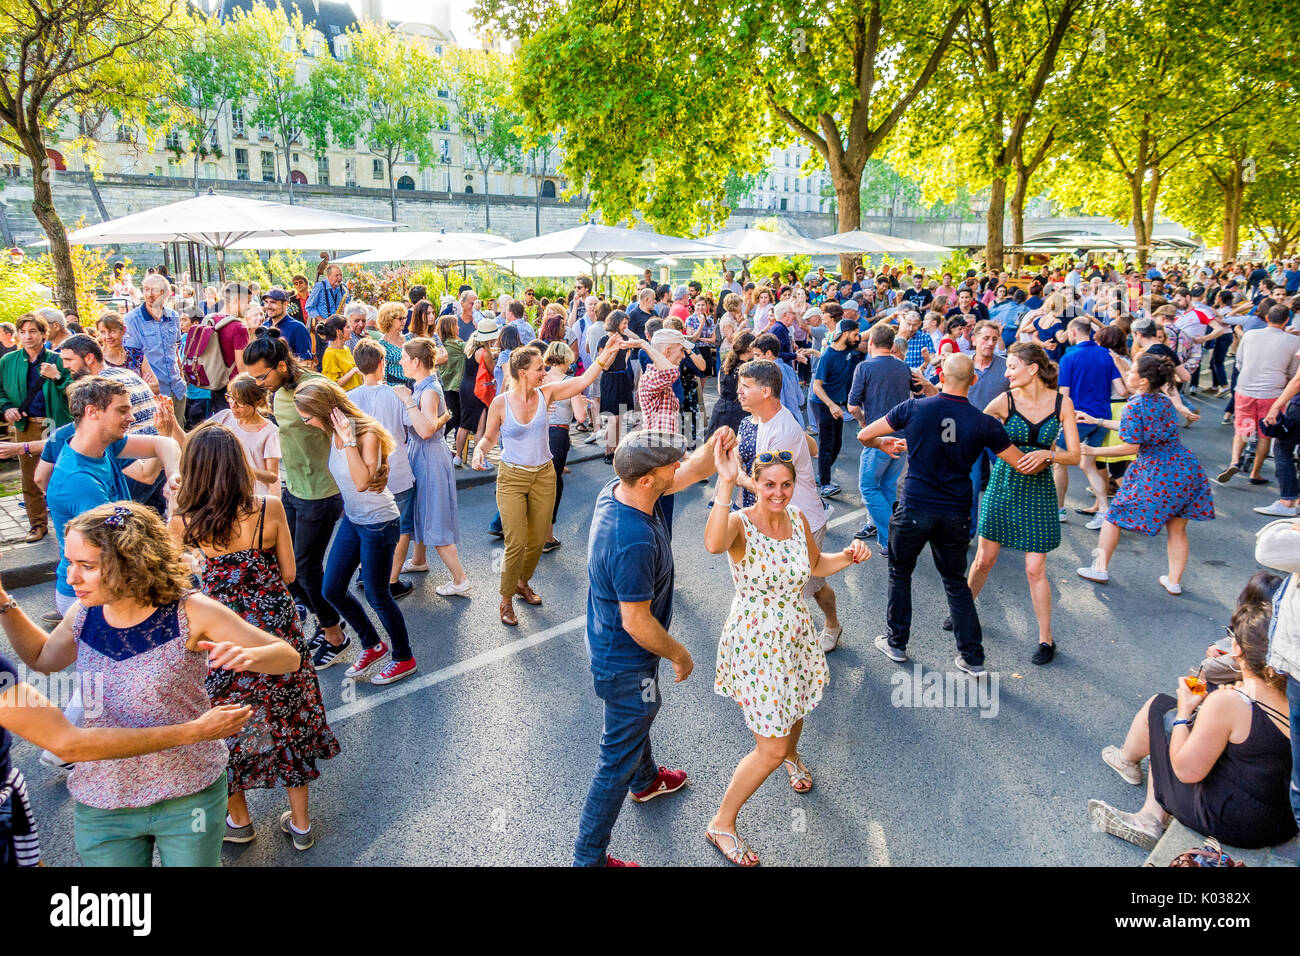 Crowds gather for the annual Paris Plages to dance - Stock Image